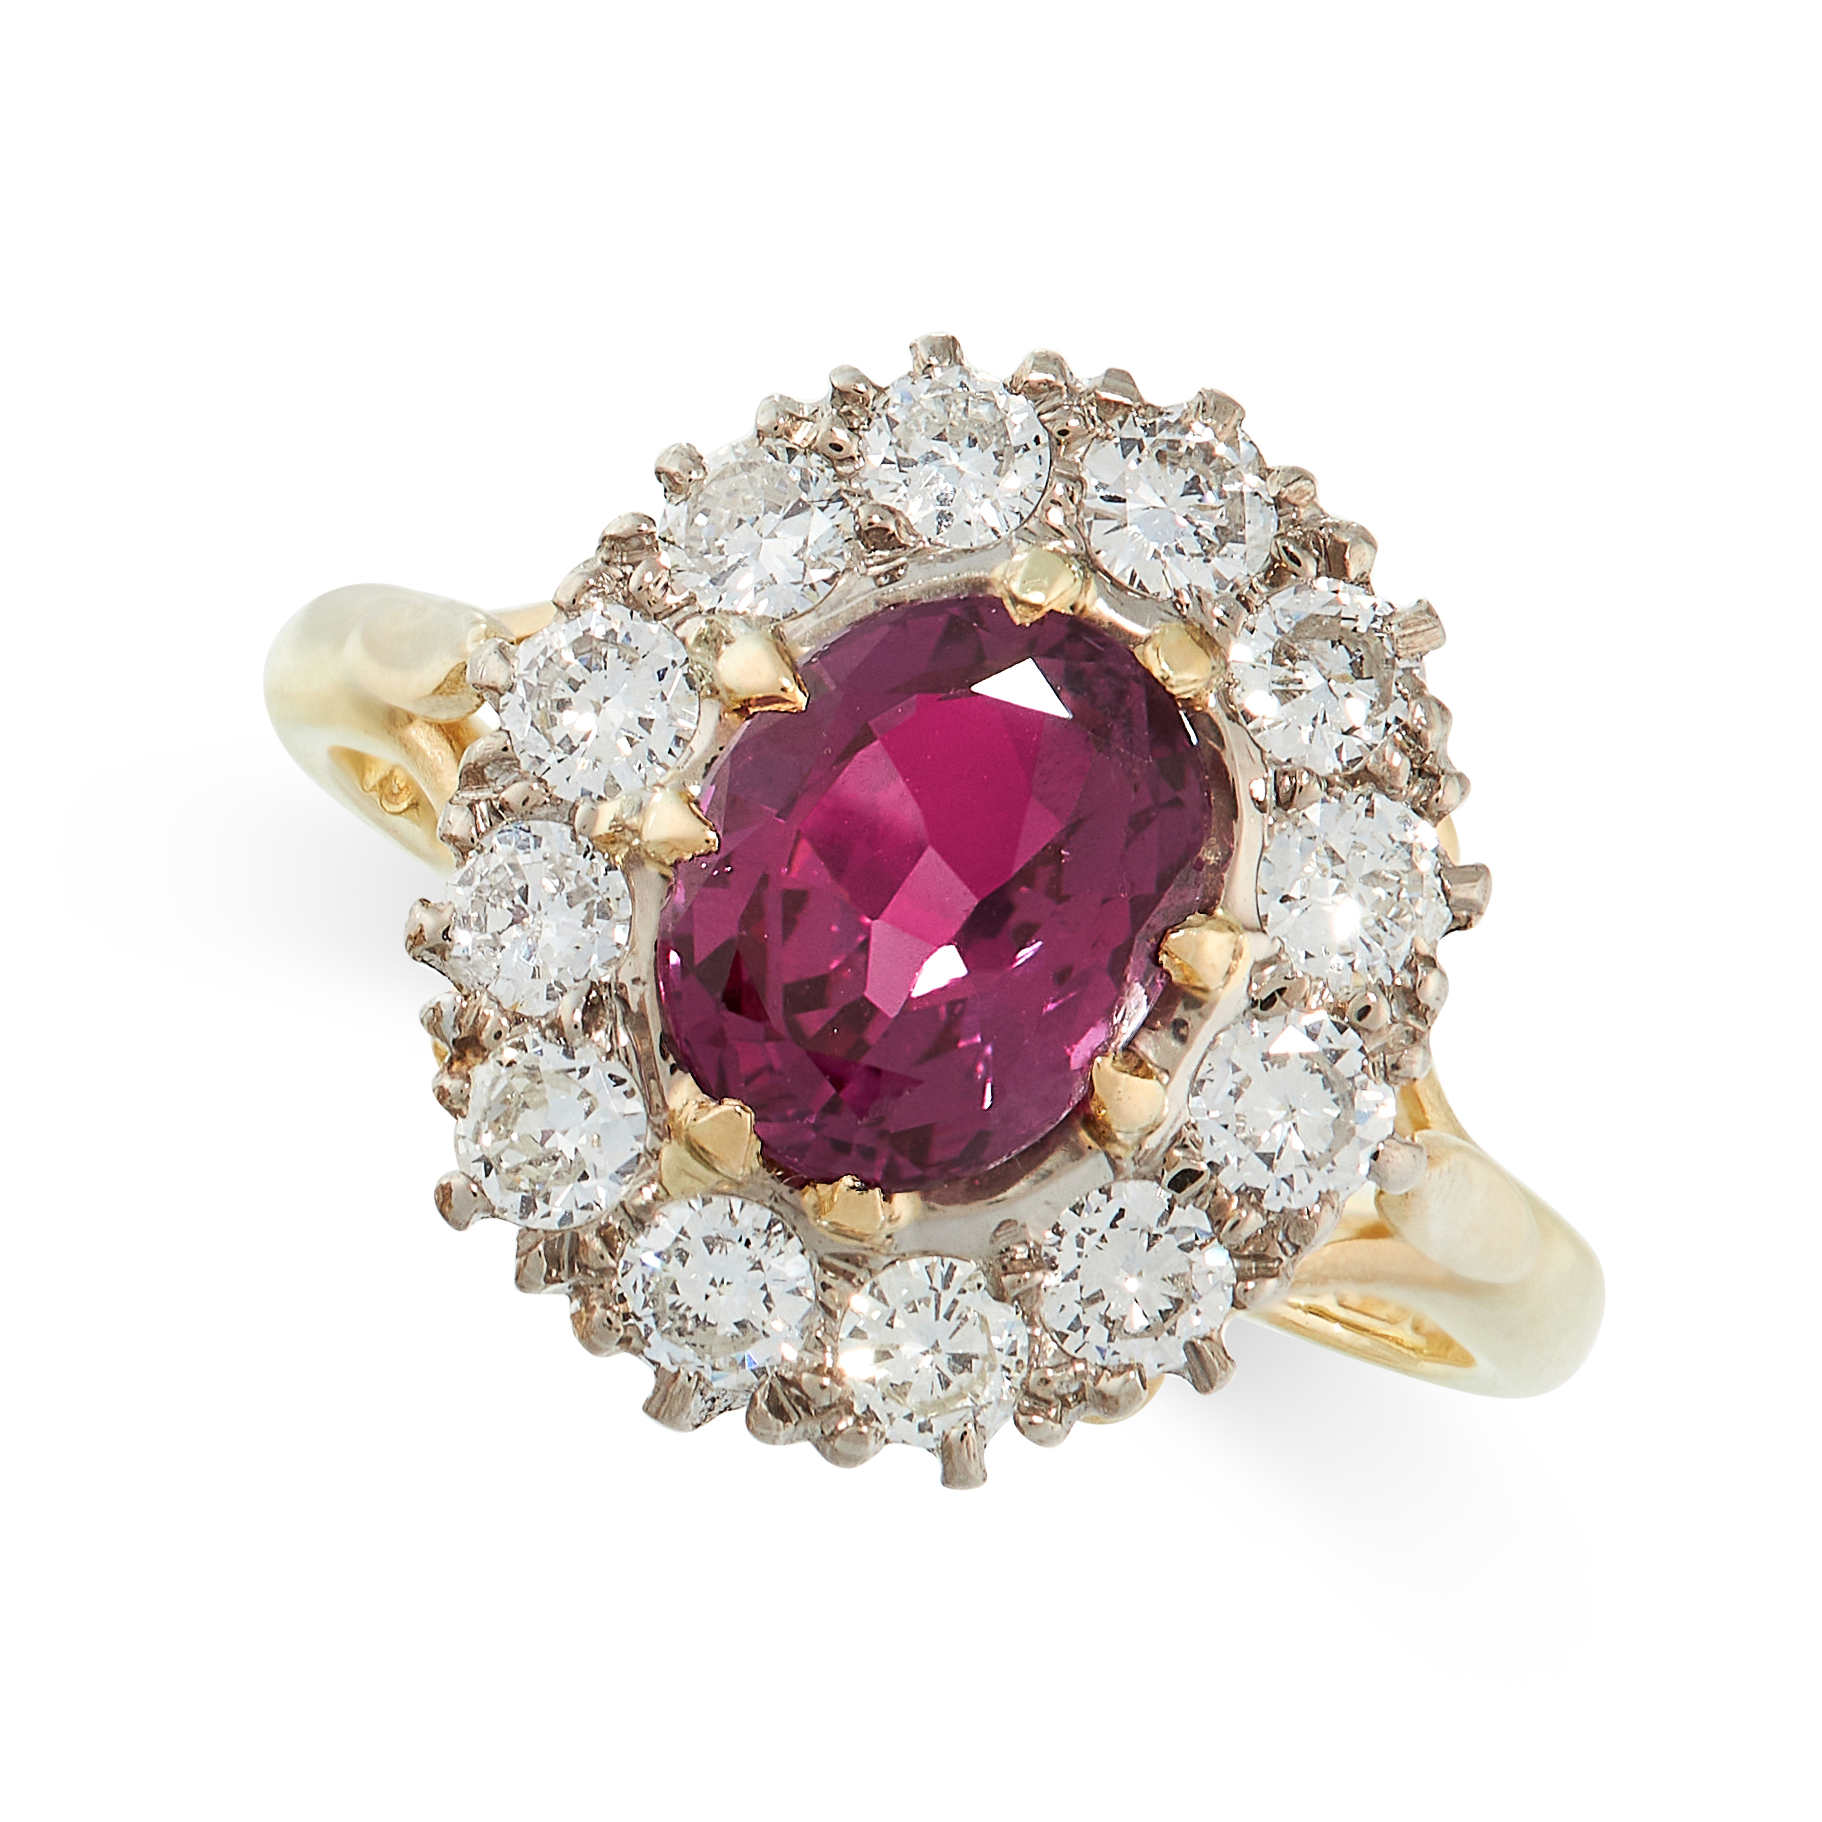 UNHEATED RUBY AND DIAMOND RING in 18ct yellow gold, in cluster form, set with a cushion cut ruby